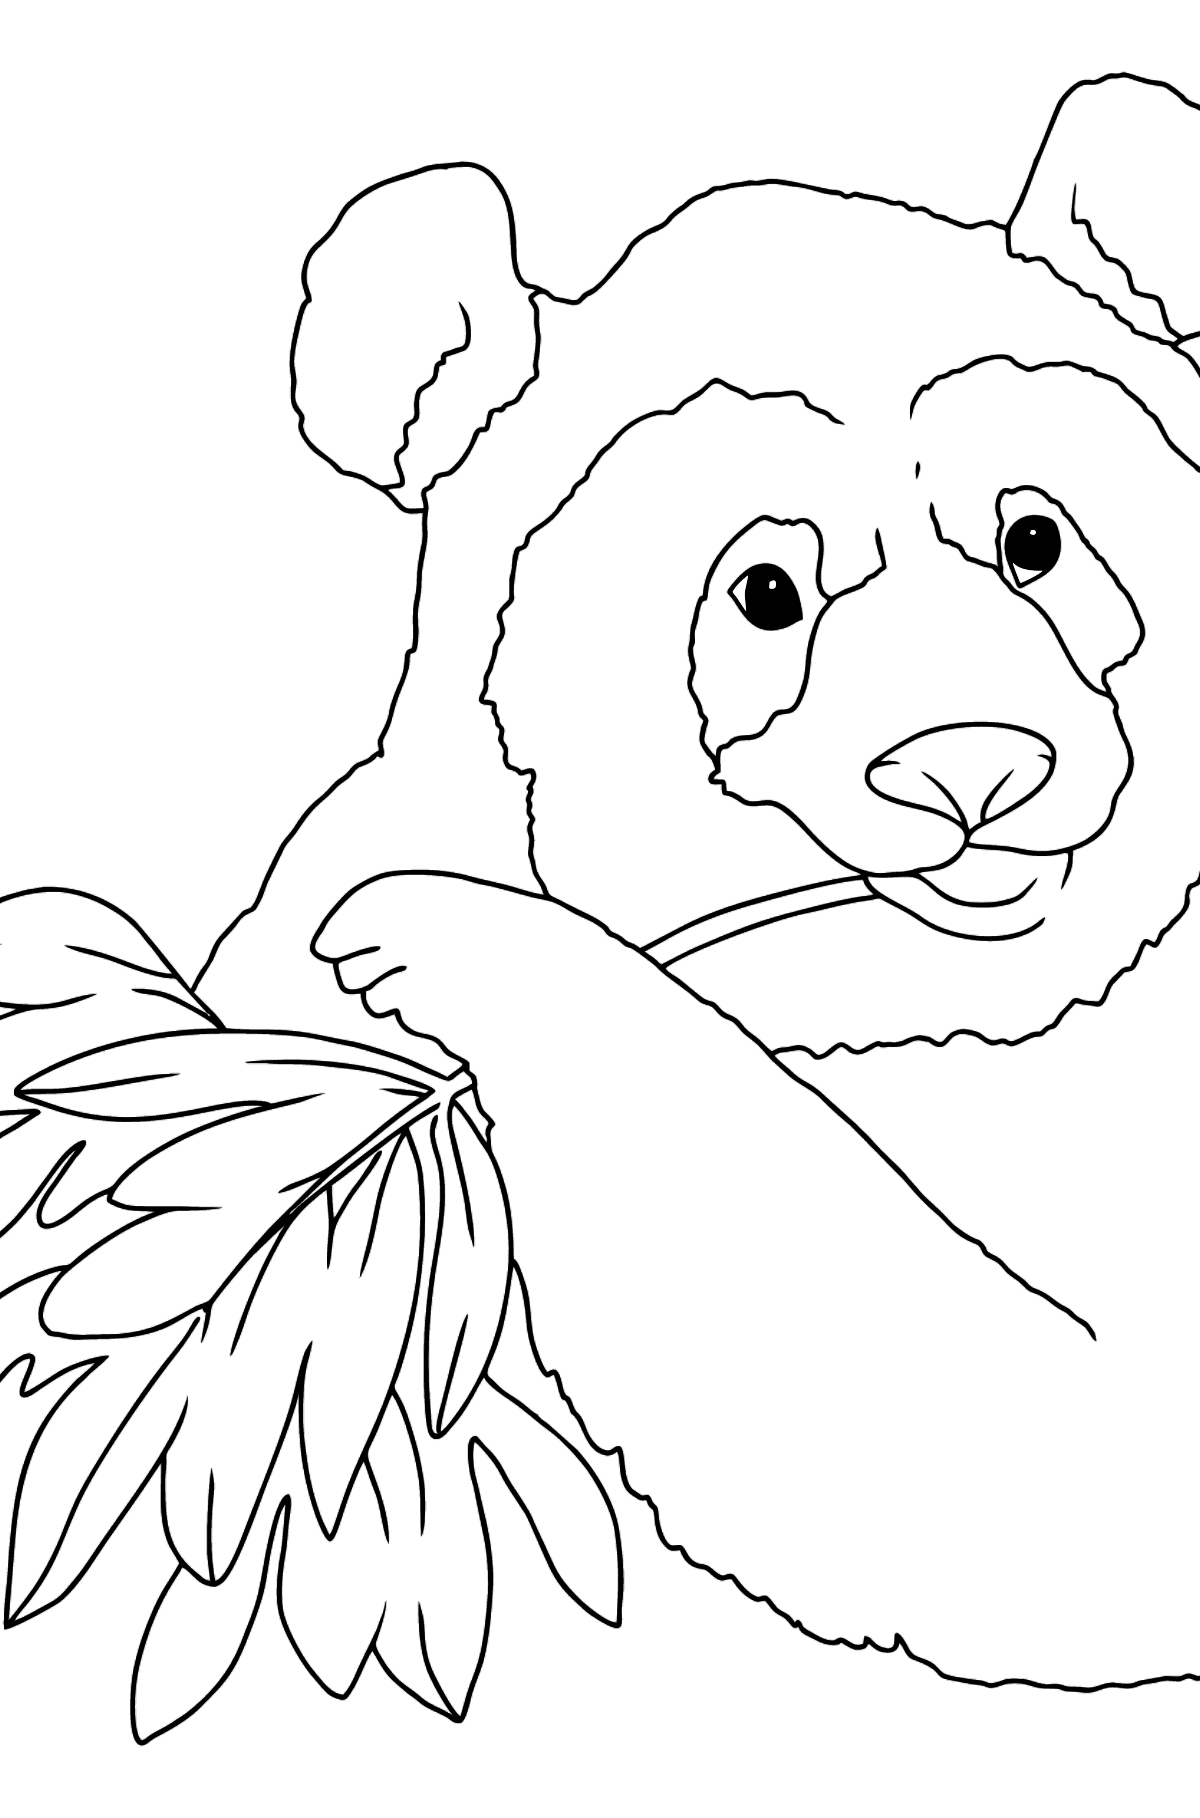 Coloring Page  - A Panda is Eating Leaves - Coloring Pages for Kids